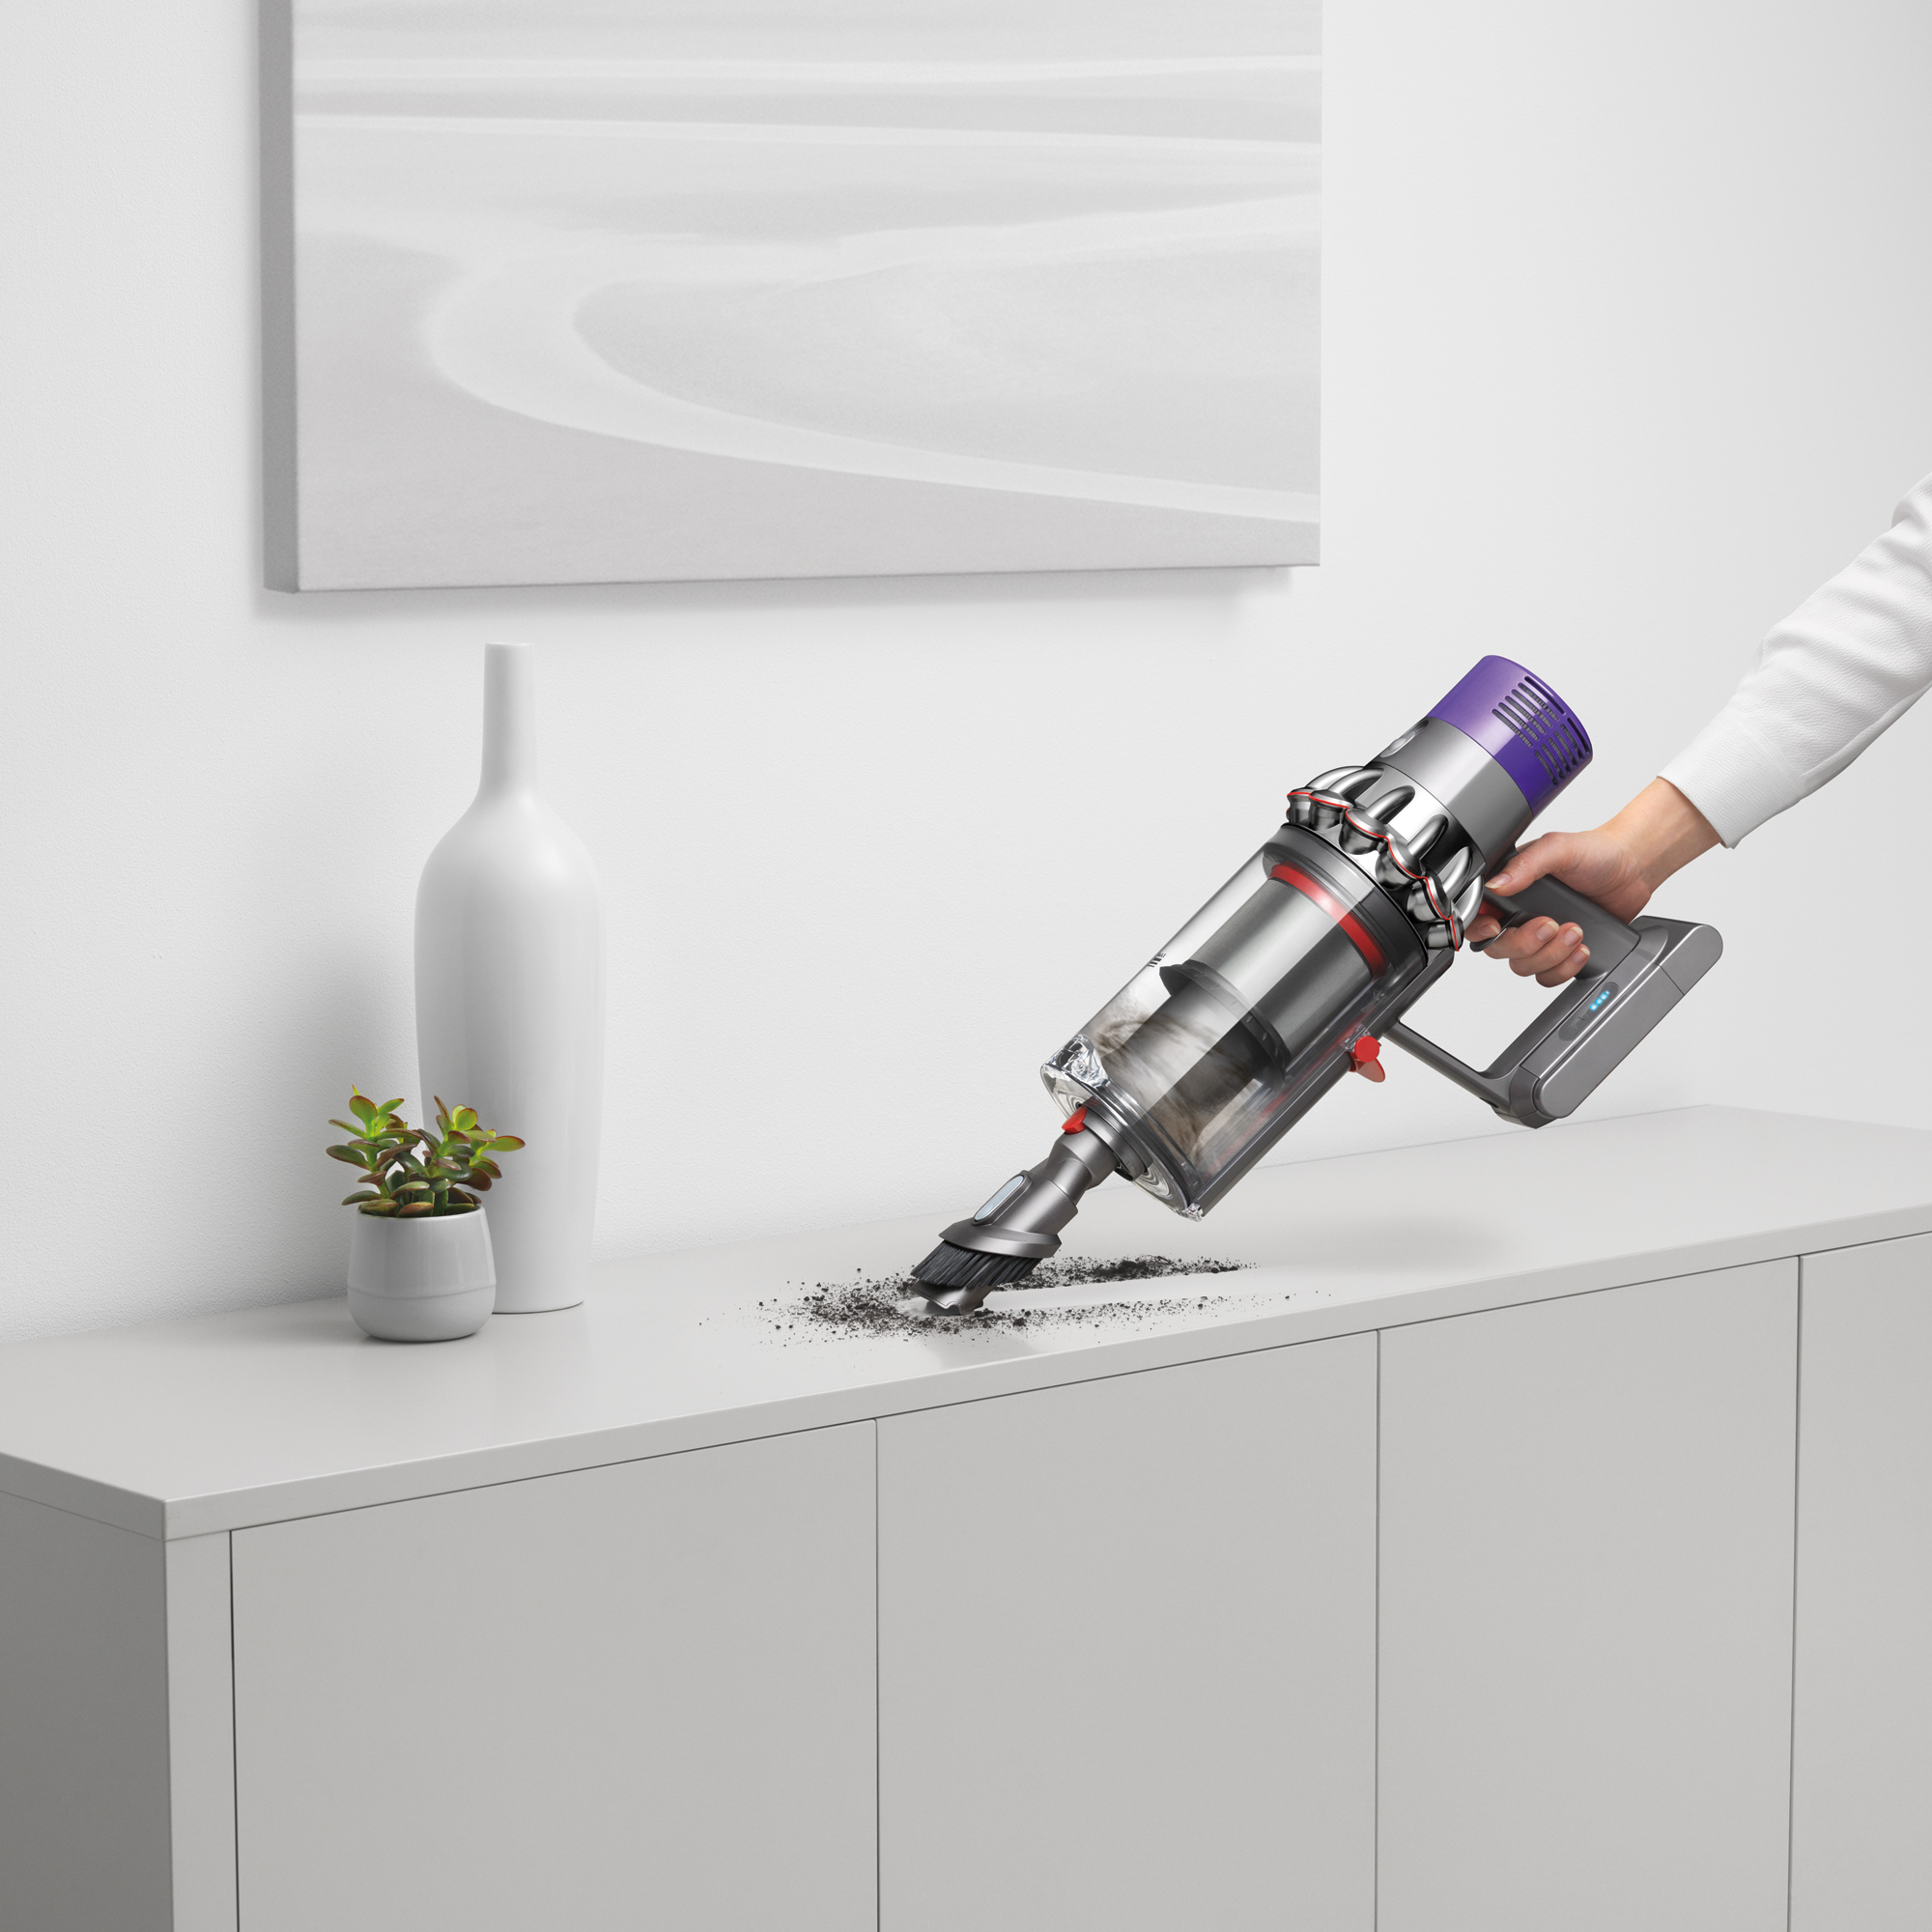 Dyson-V10-Absolute-Cordless-Vacuum-Cleaner-Refurbished thumbnail 23